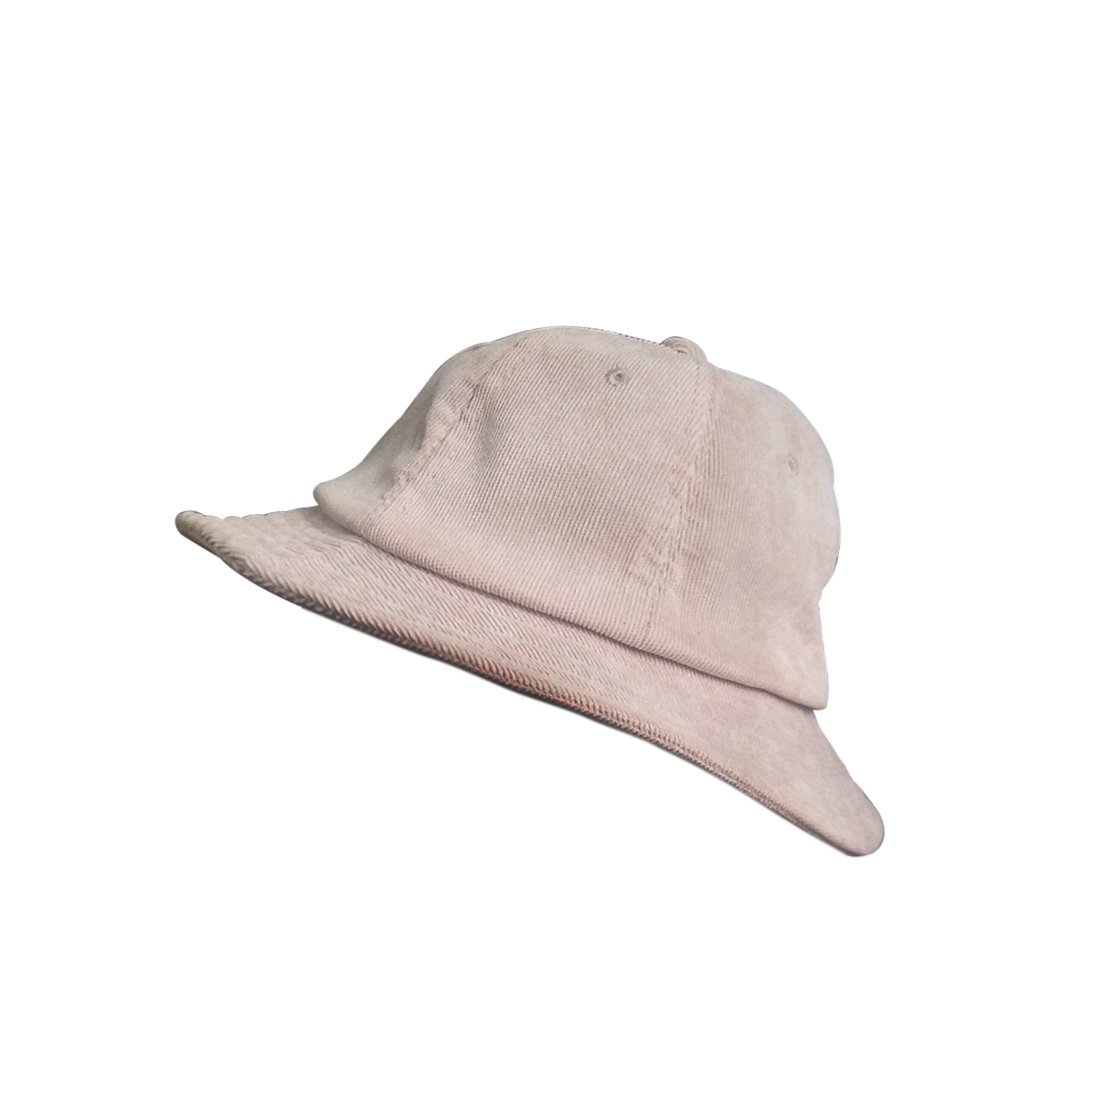 Finaze Fashion Fisherman Cap Camping Hat Golf Cap Breathable Casual Sun Protection for Travel Camping Golfing (M3306)